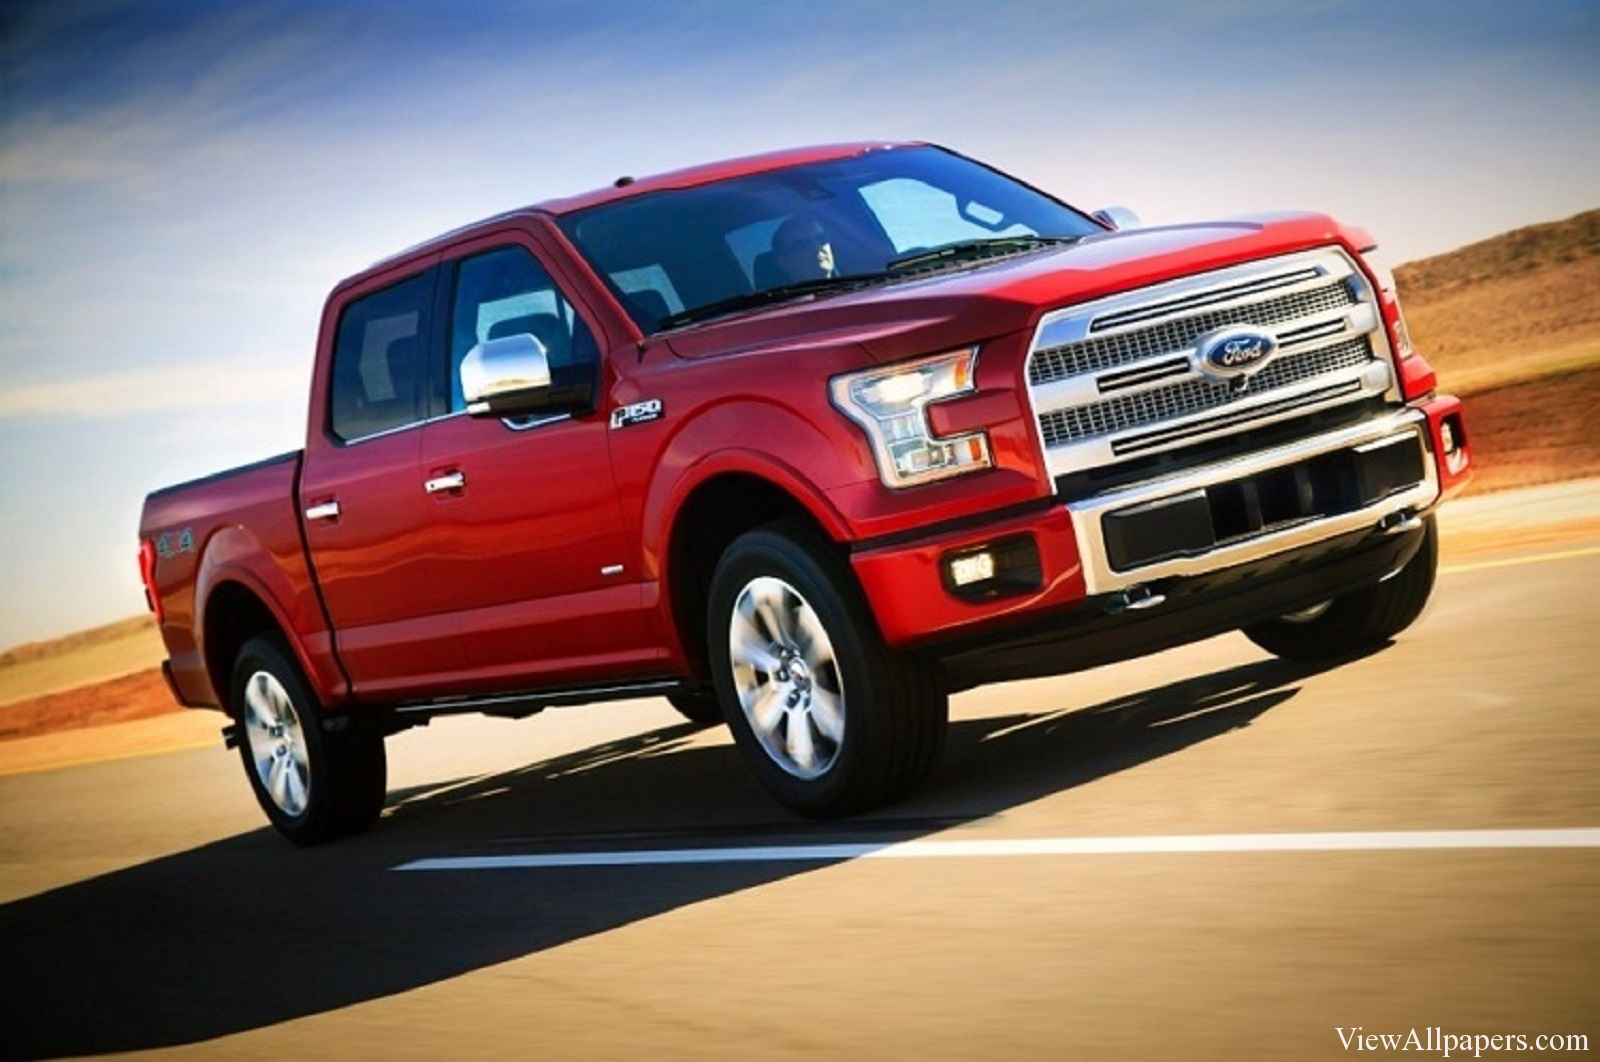 2017 Ford F 150 High Resolution Wallpaper download 2017 Ford F 1600x1062